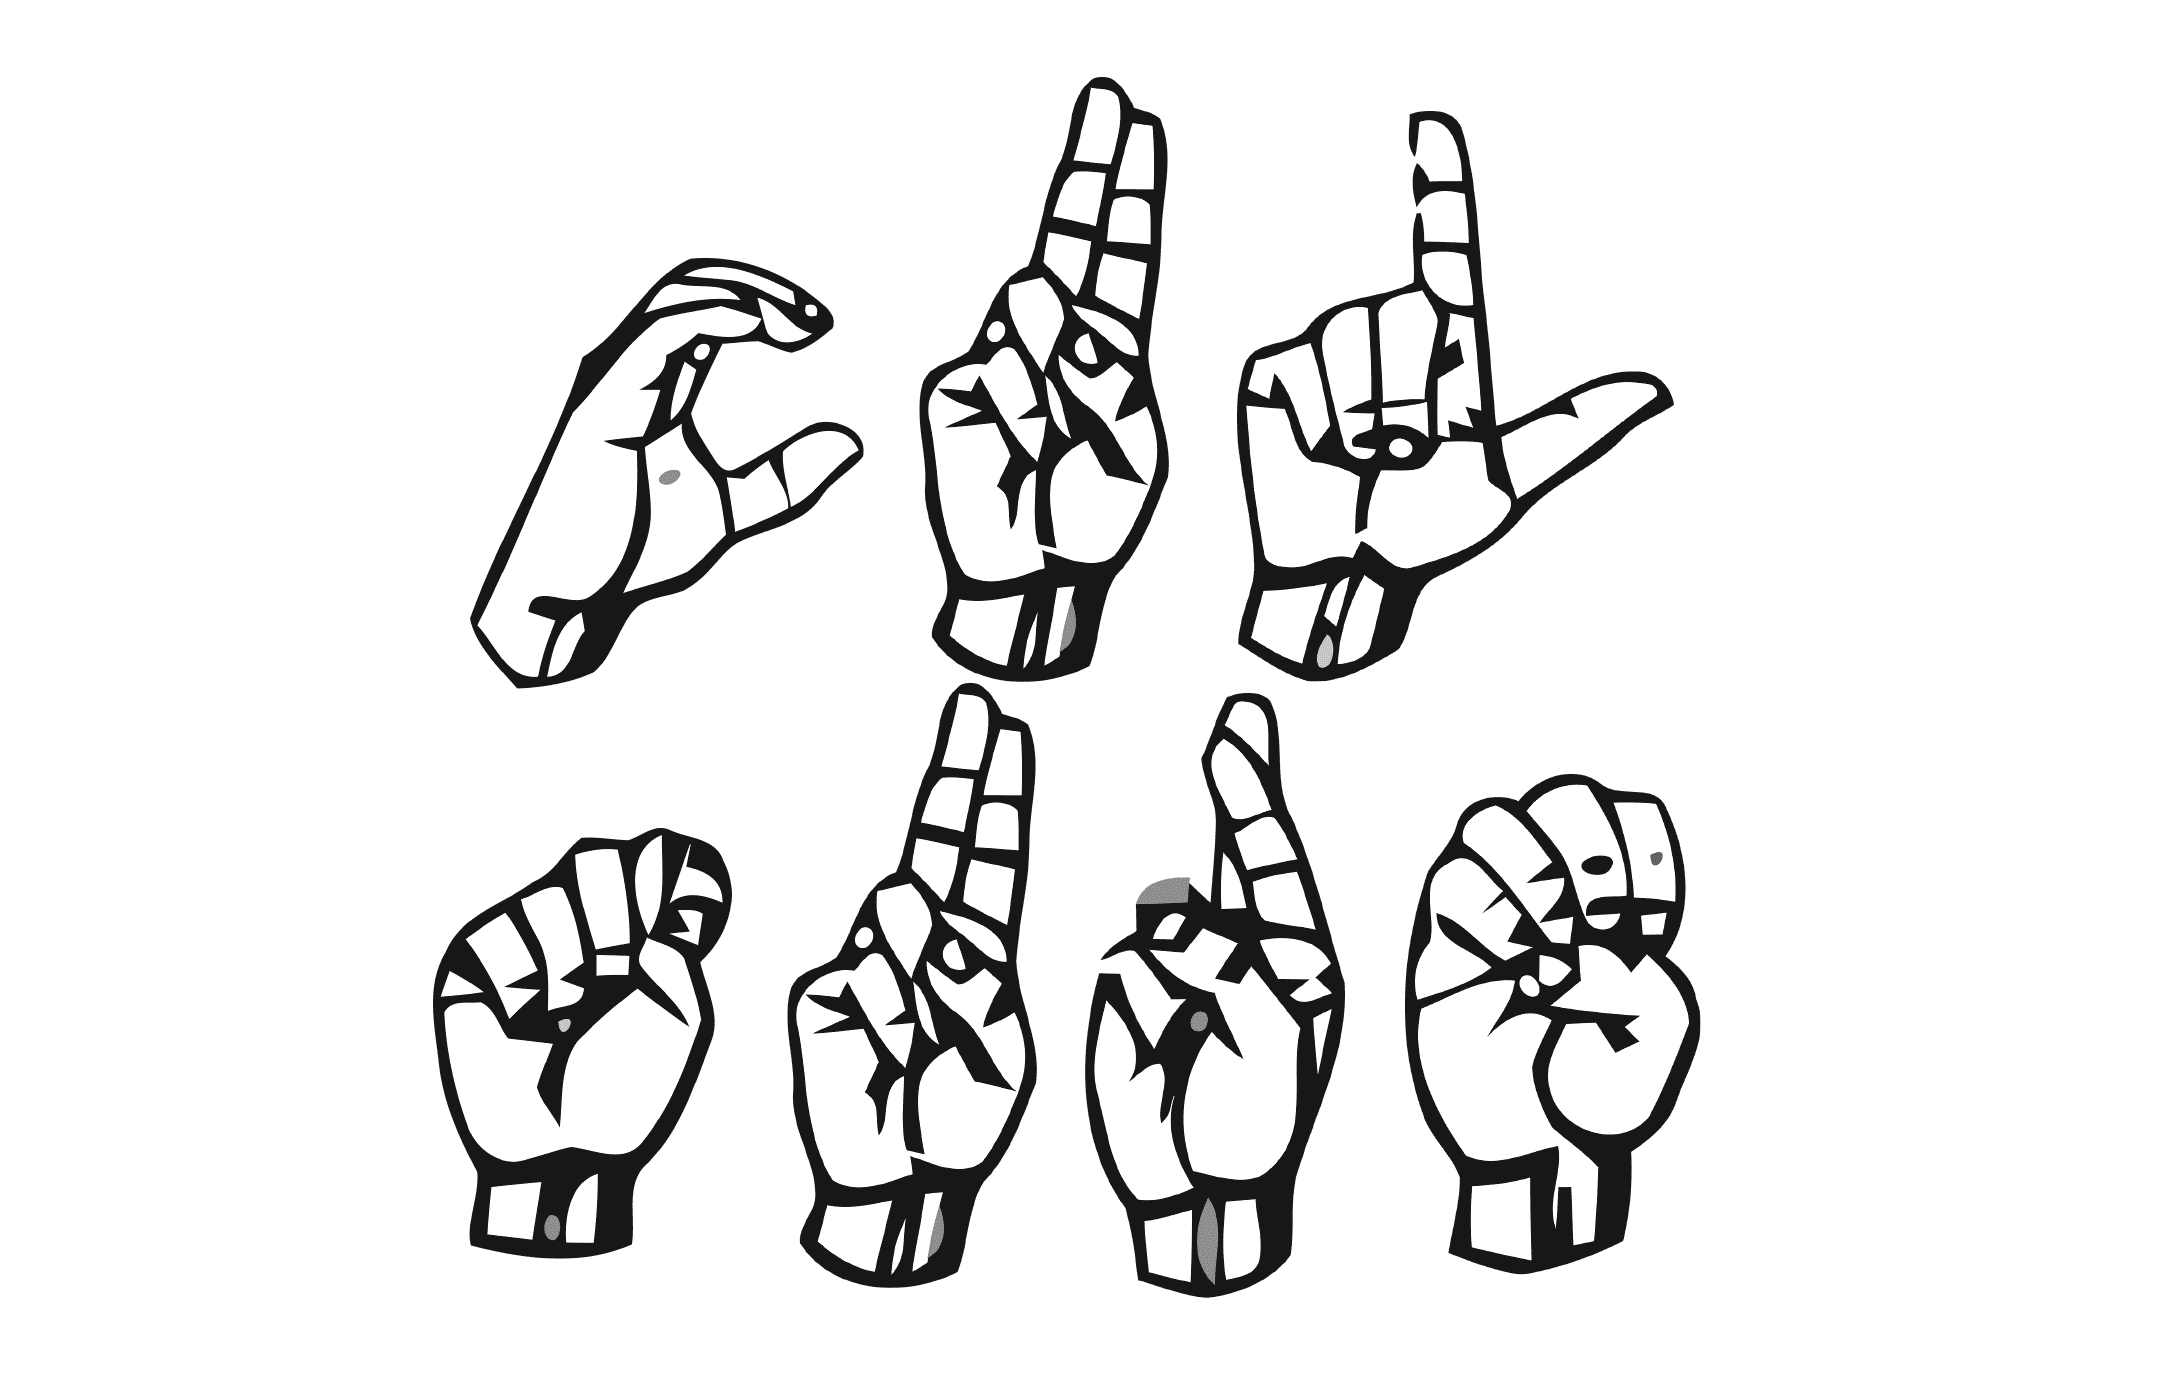 Sign language letters spelling out the word culture